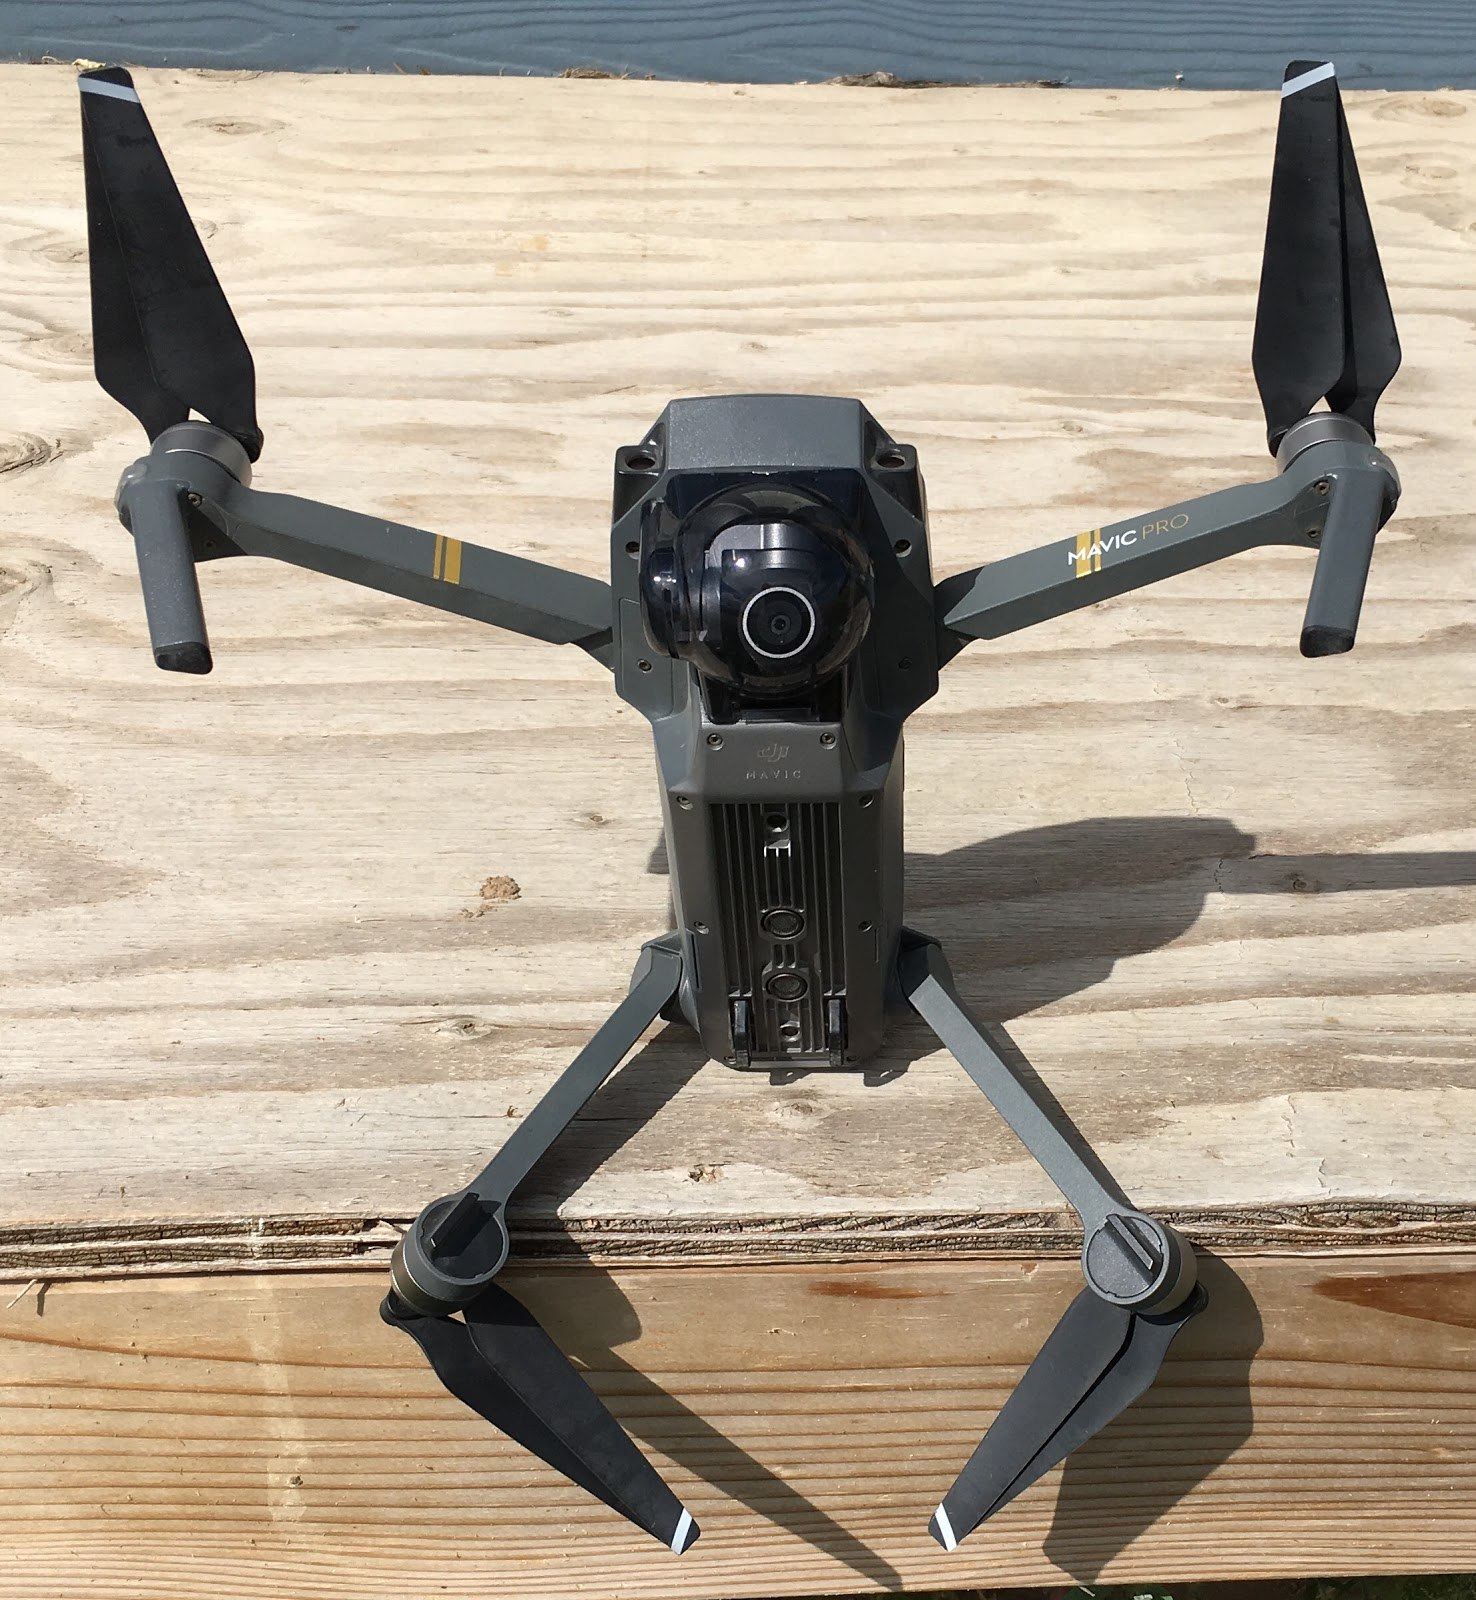 Syonyk's Project Blog: DJI Mavic Pro: The Missing Handbook